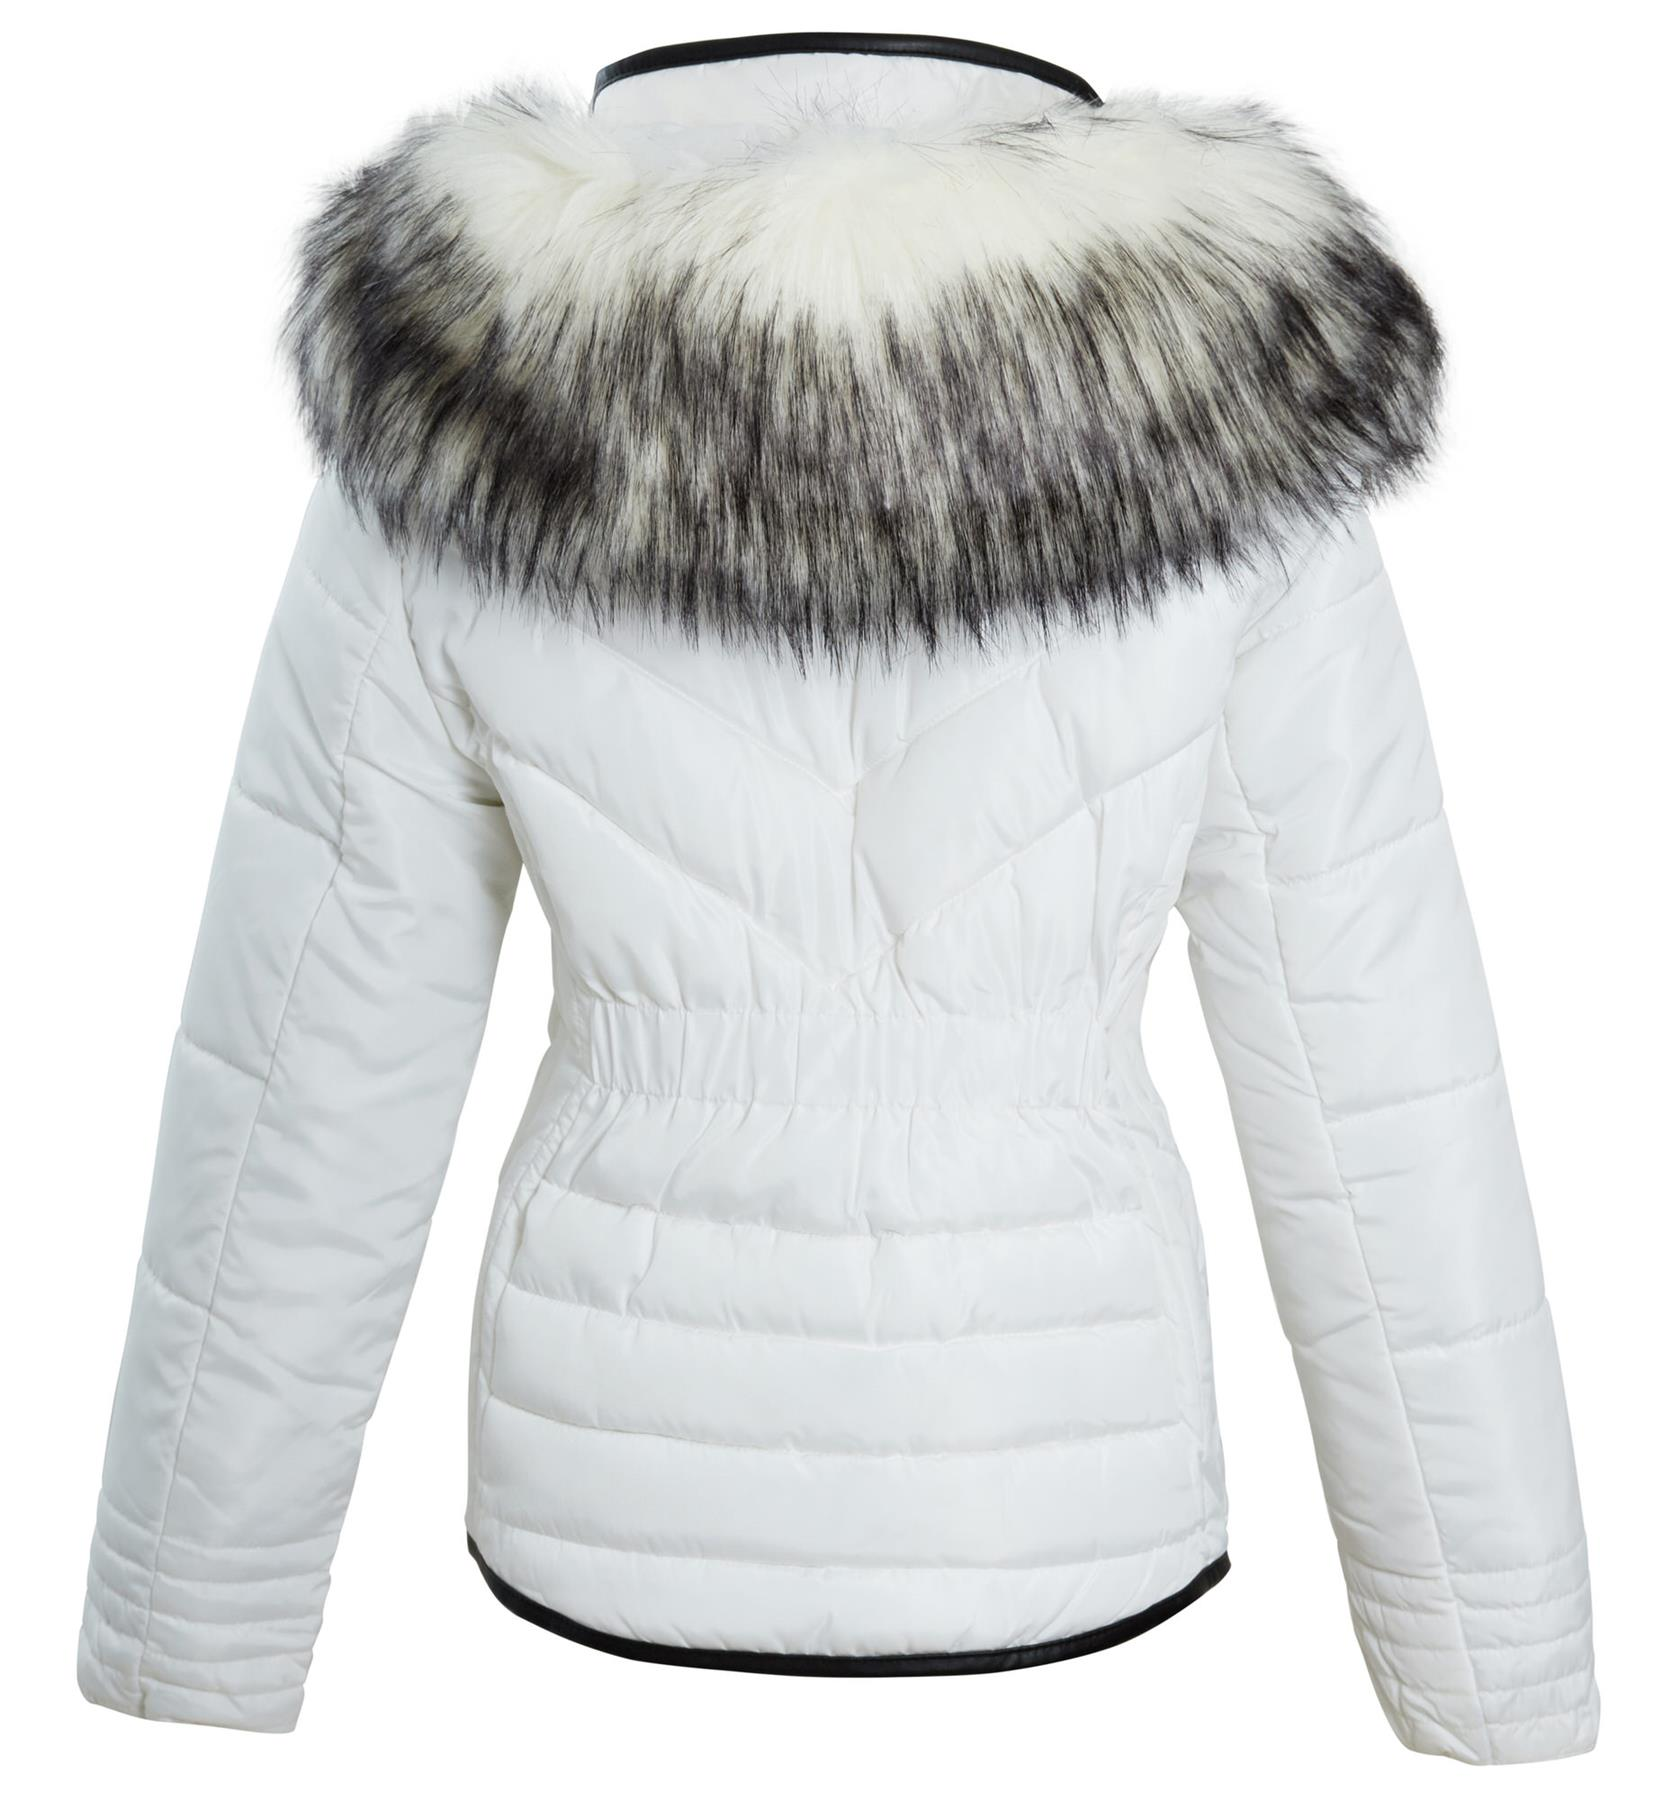 Shelikes-Womens-Ladies-Quilted-Padded-Winter-Warm-Fur-Parka-Jacket thumbnail 7